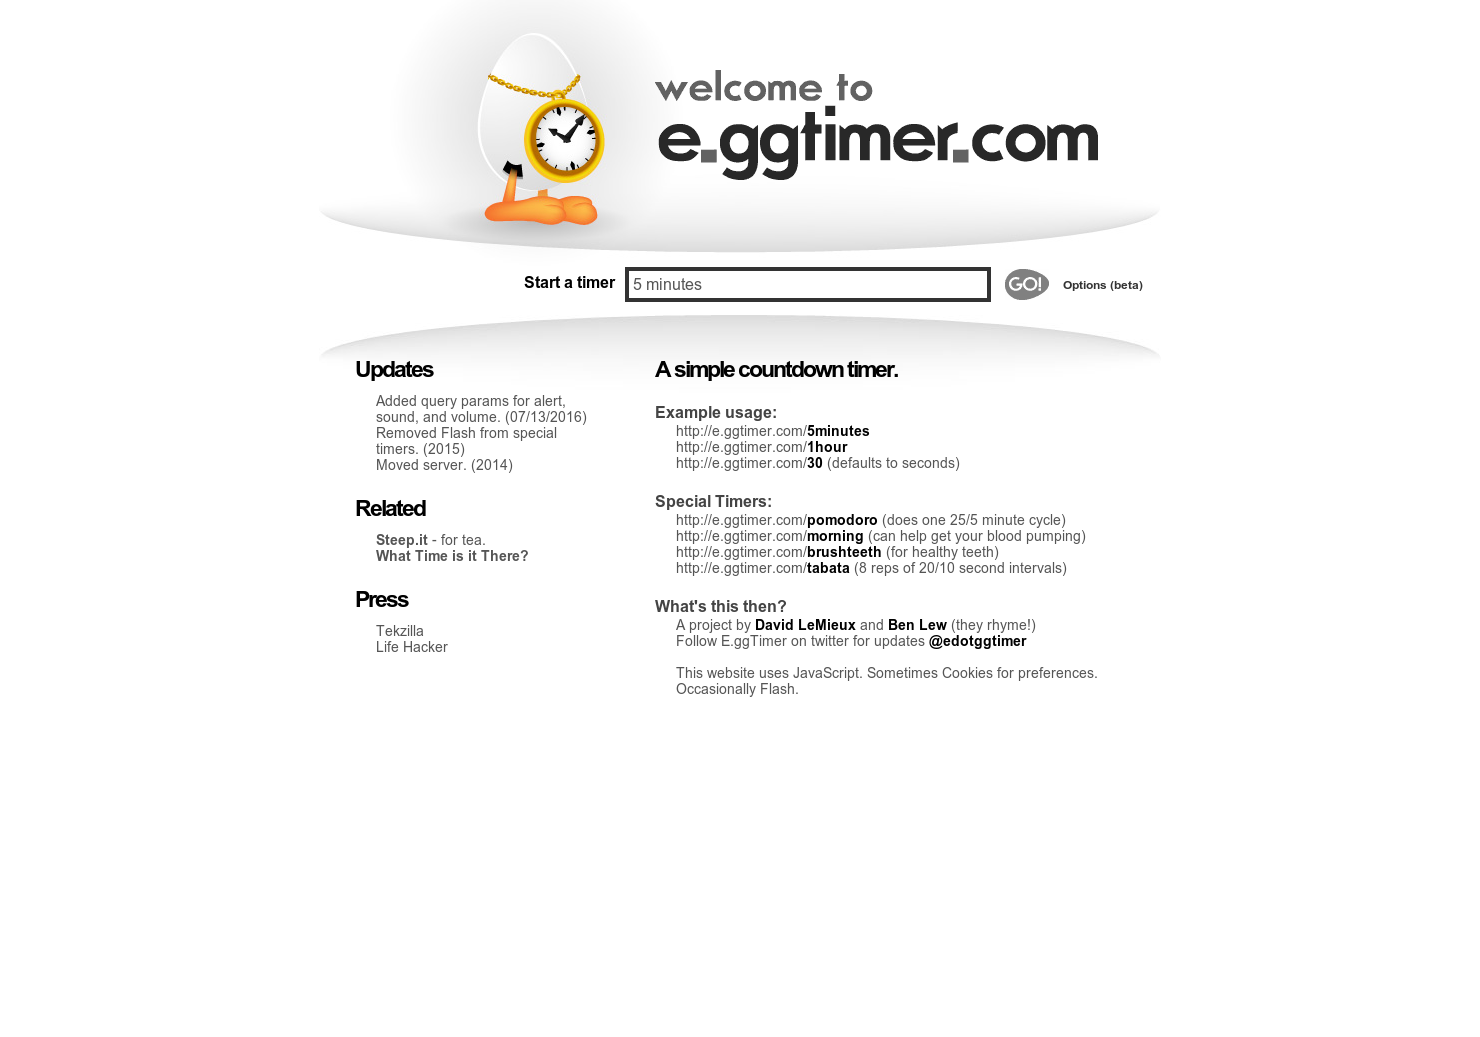 E ggtimer com - A simple countdown timer with an alarm for